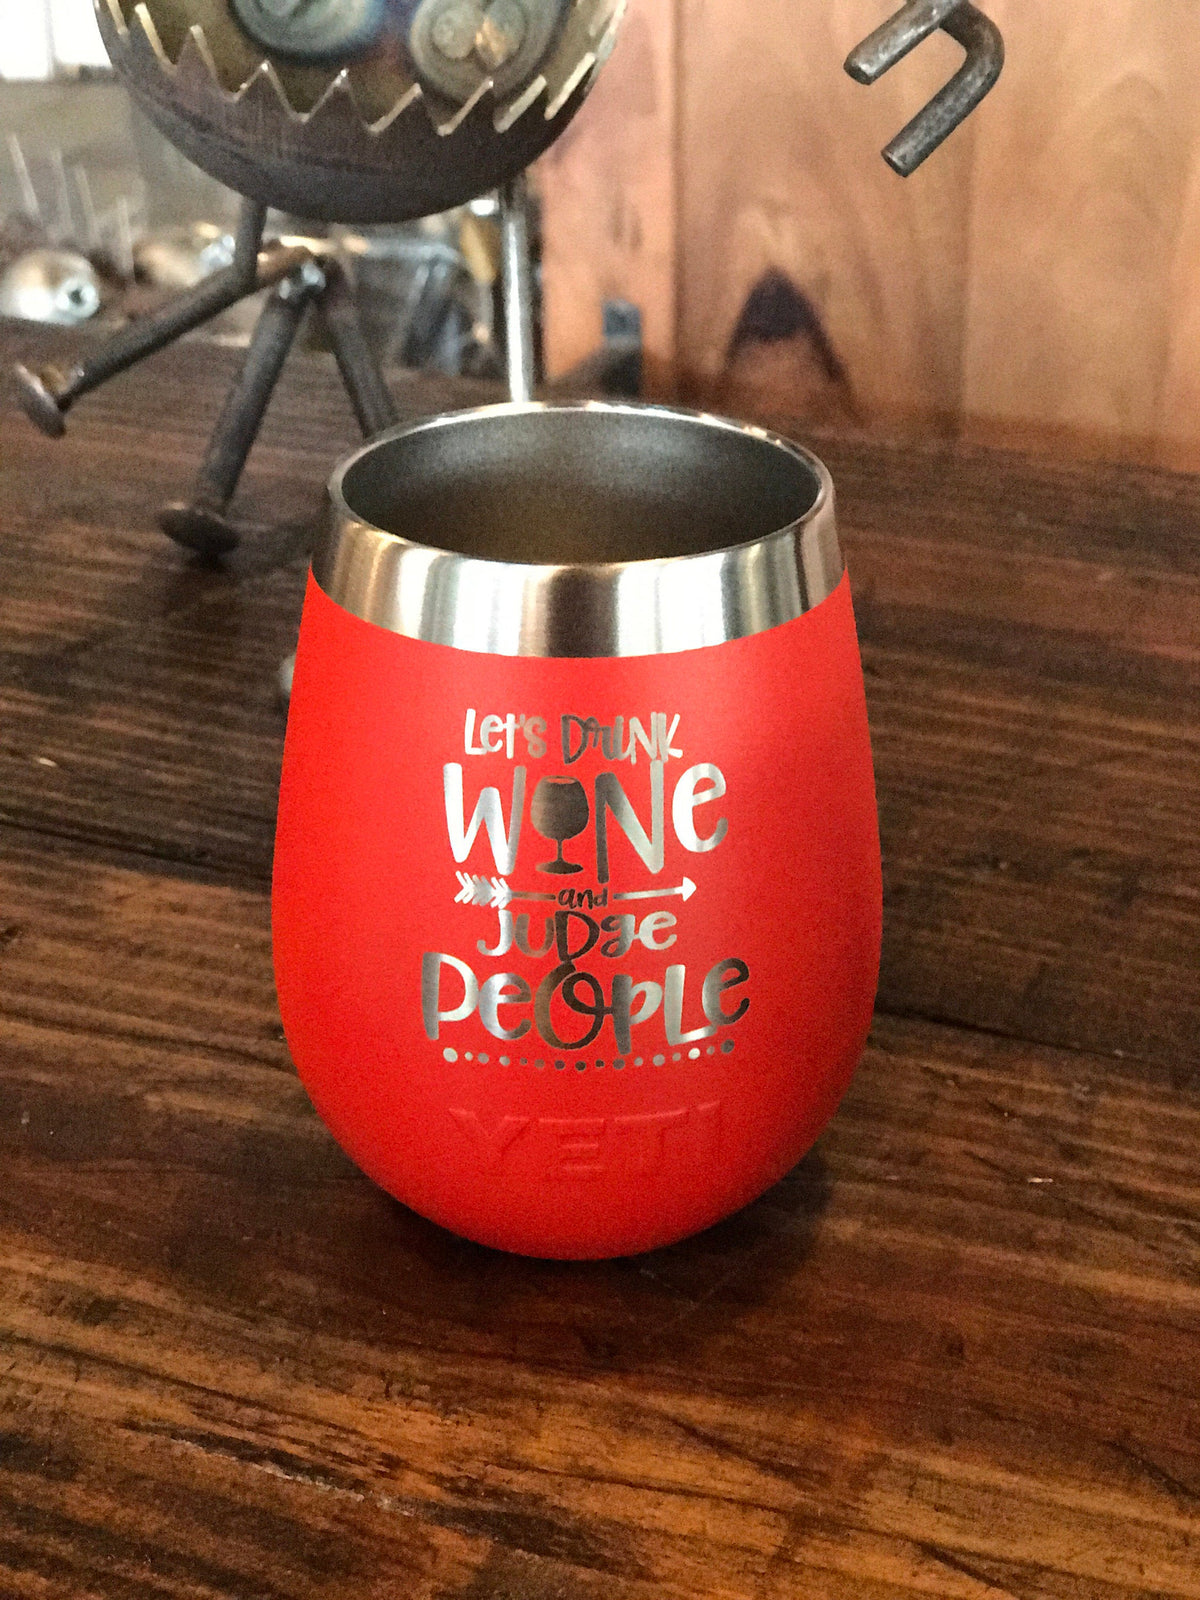 Laser Engraved Yeti Wine Tumbler - WINE & JUDGE PEOPLE